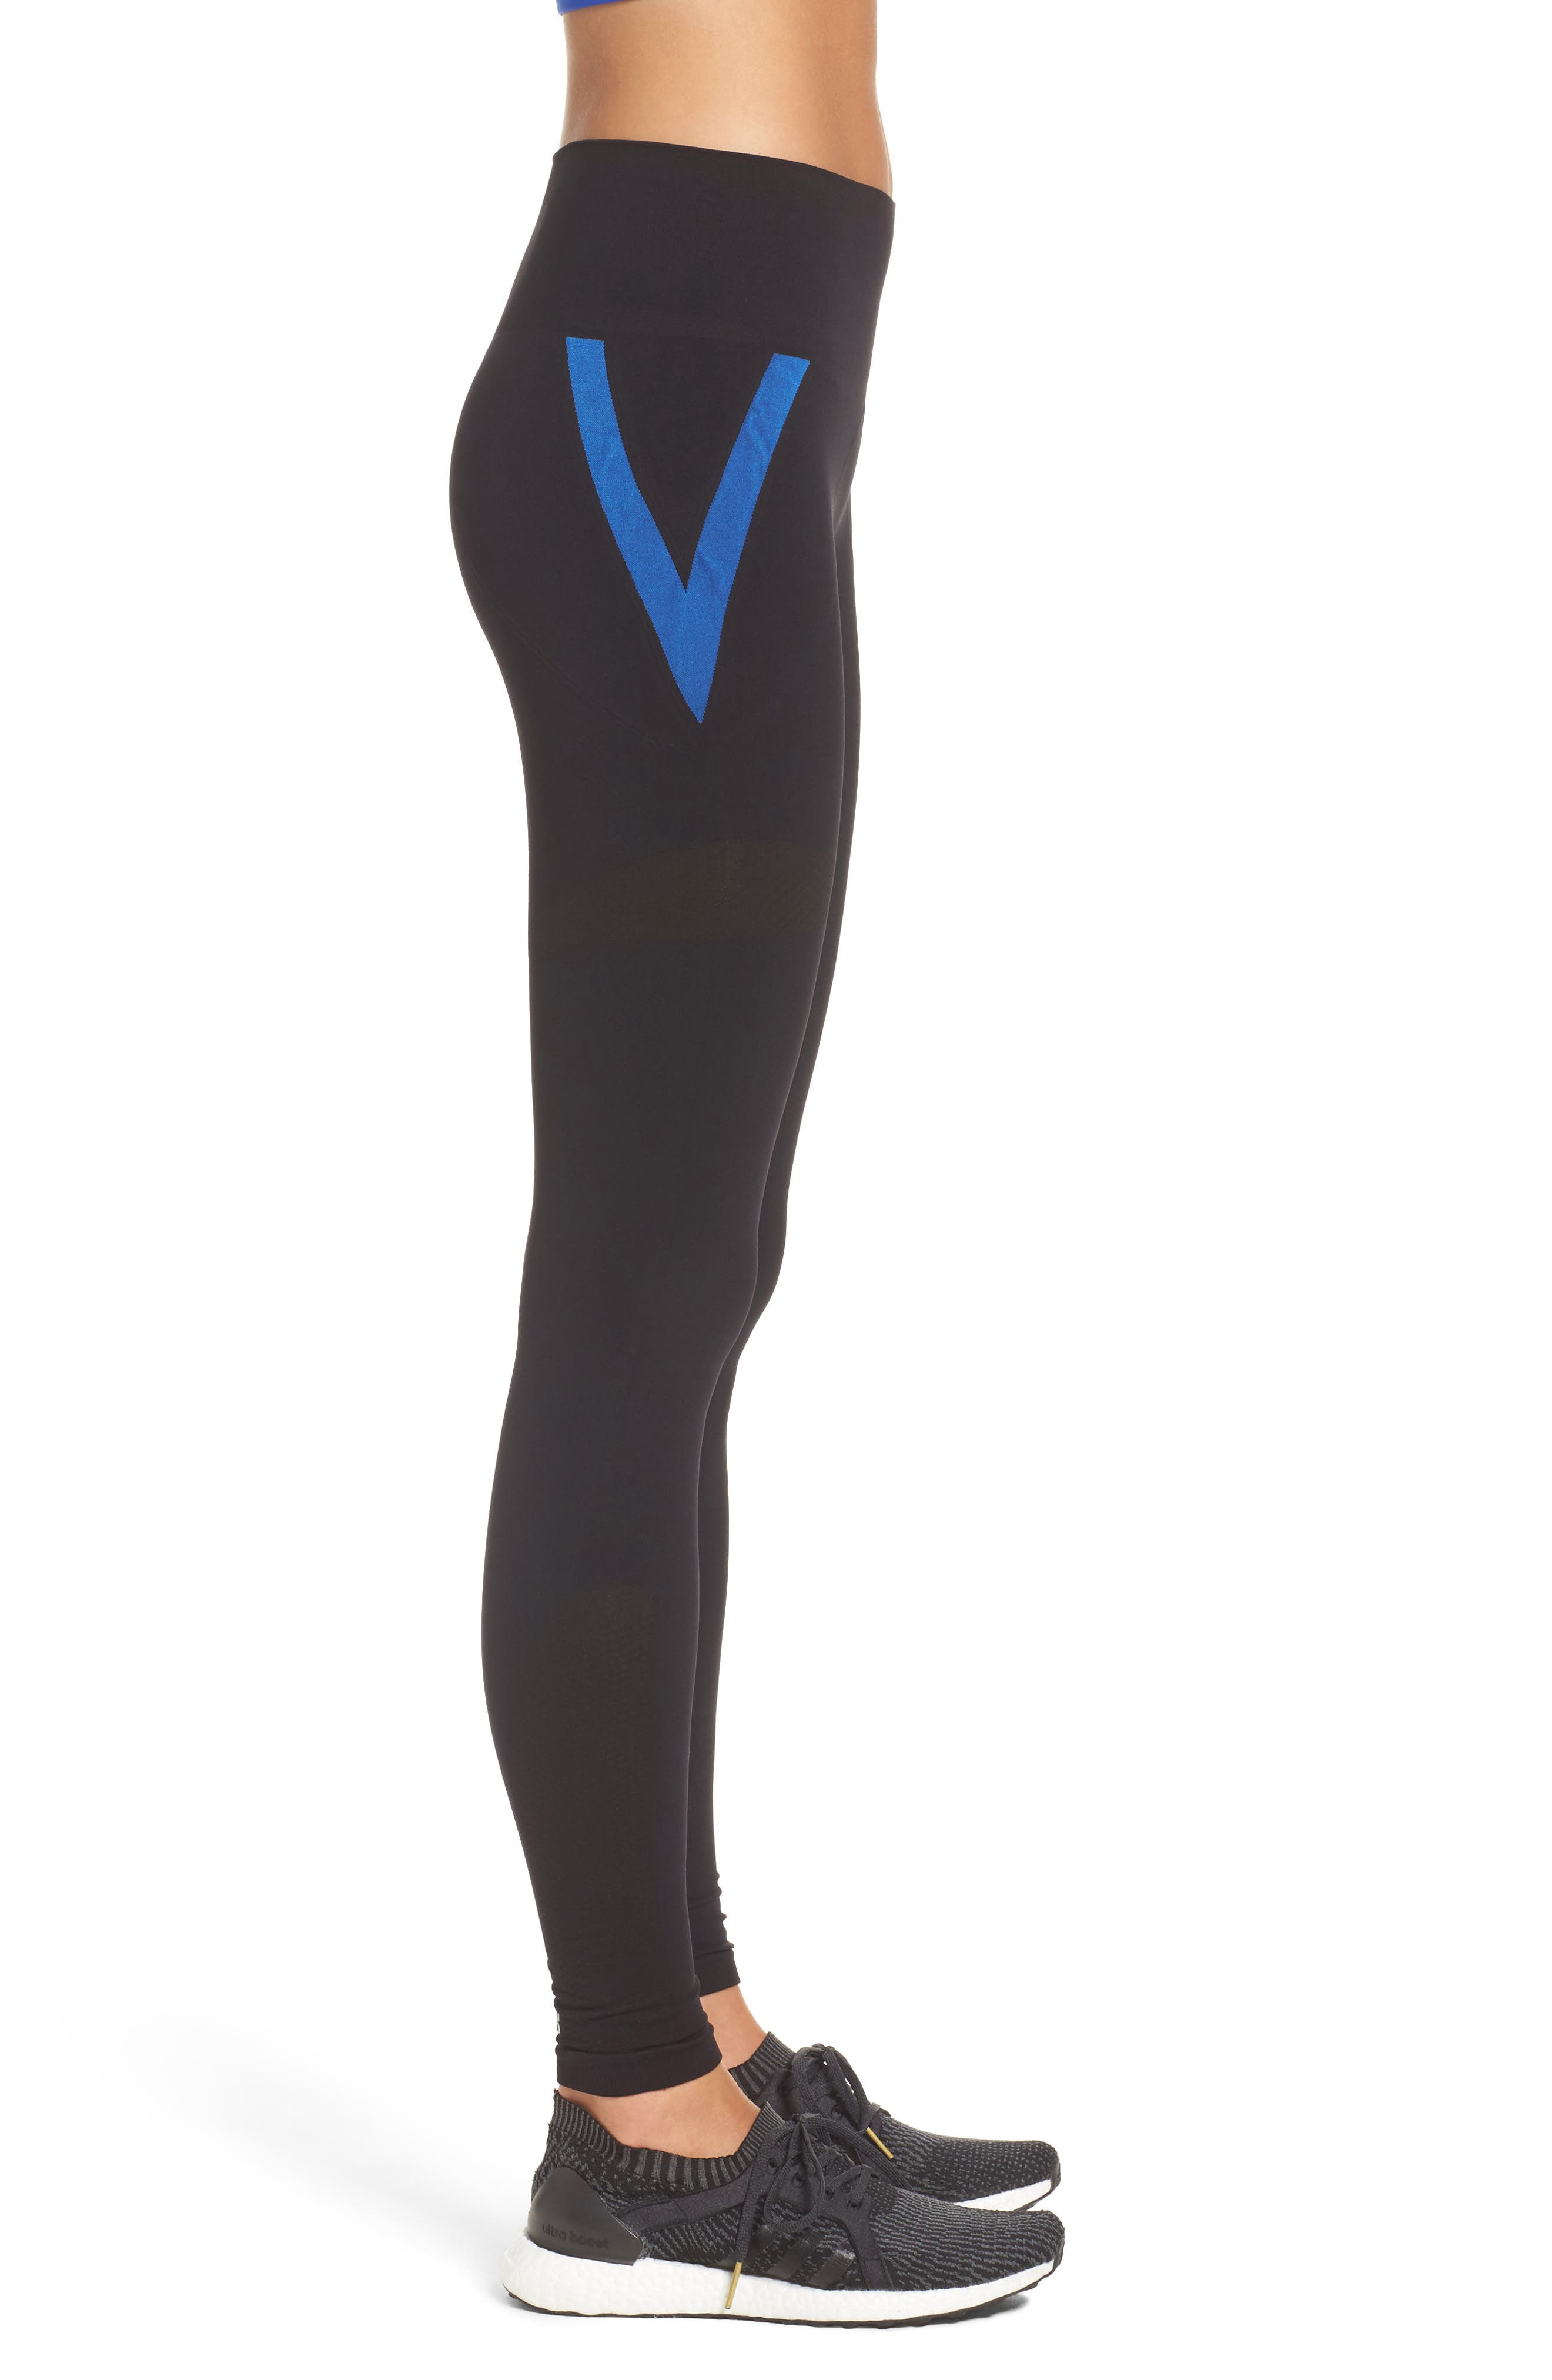 BoomBoom Athletica Leggings,                             Alternate thumbnail 3, color,                             Black With Blue